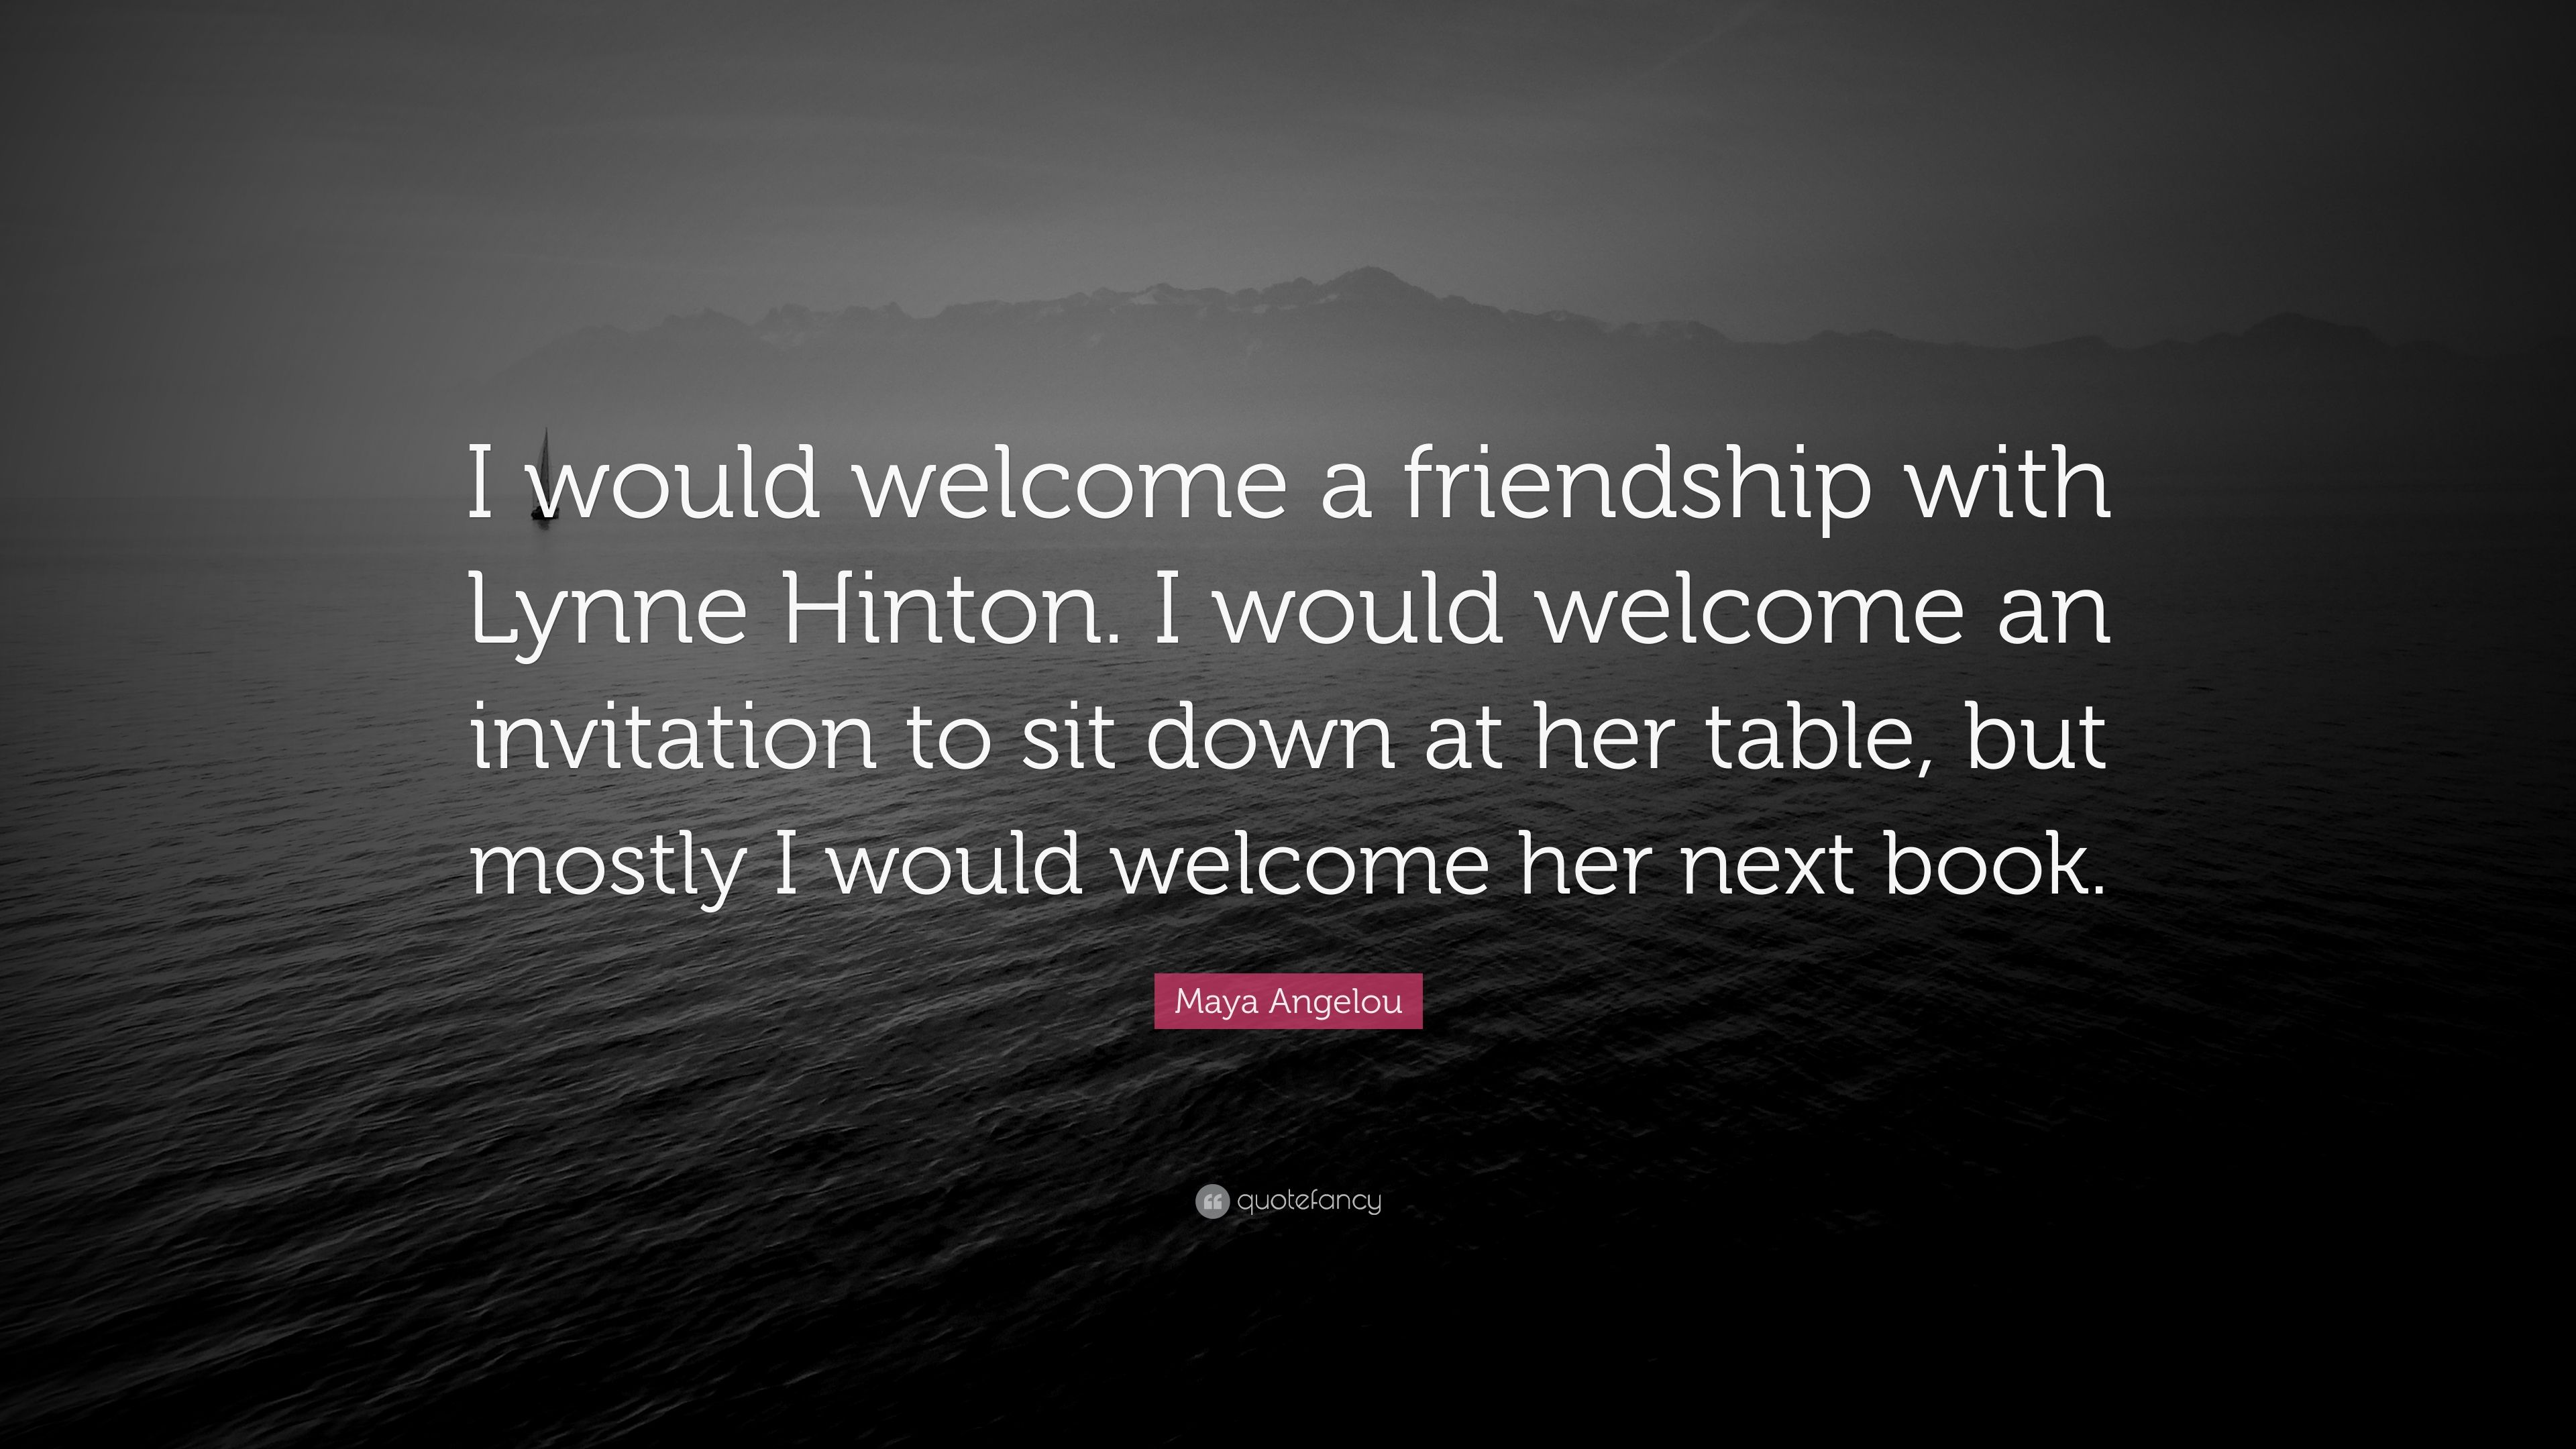 Maya Angelou Quote: U201cI Would Welcome A Friendship With Lynne Hinton. I Would